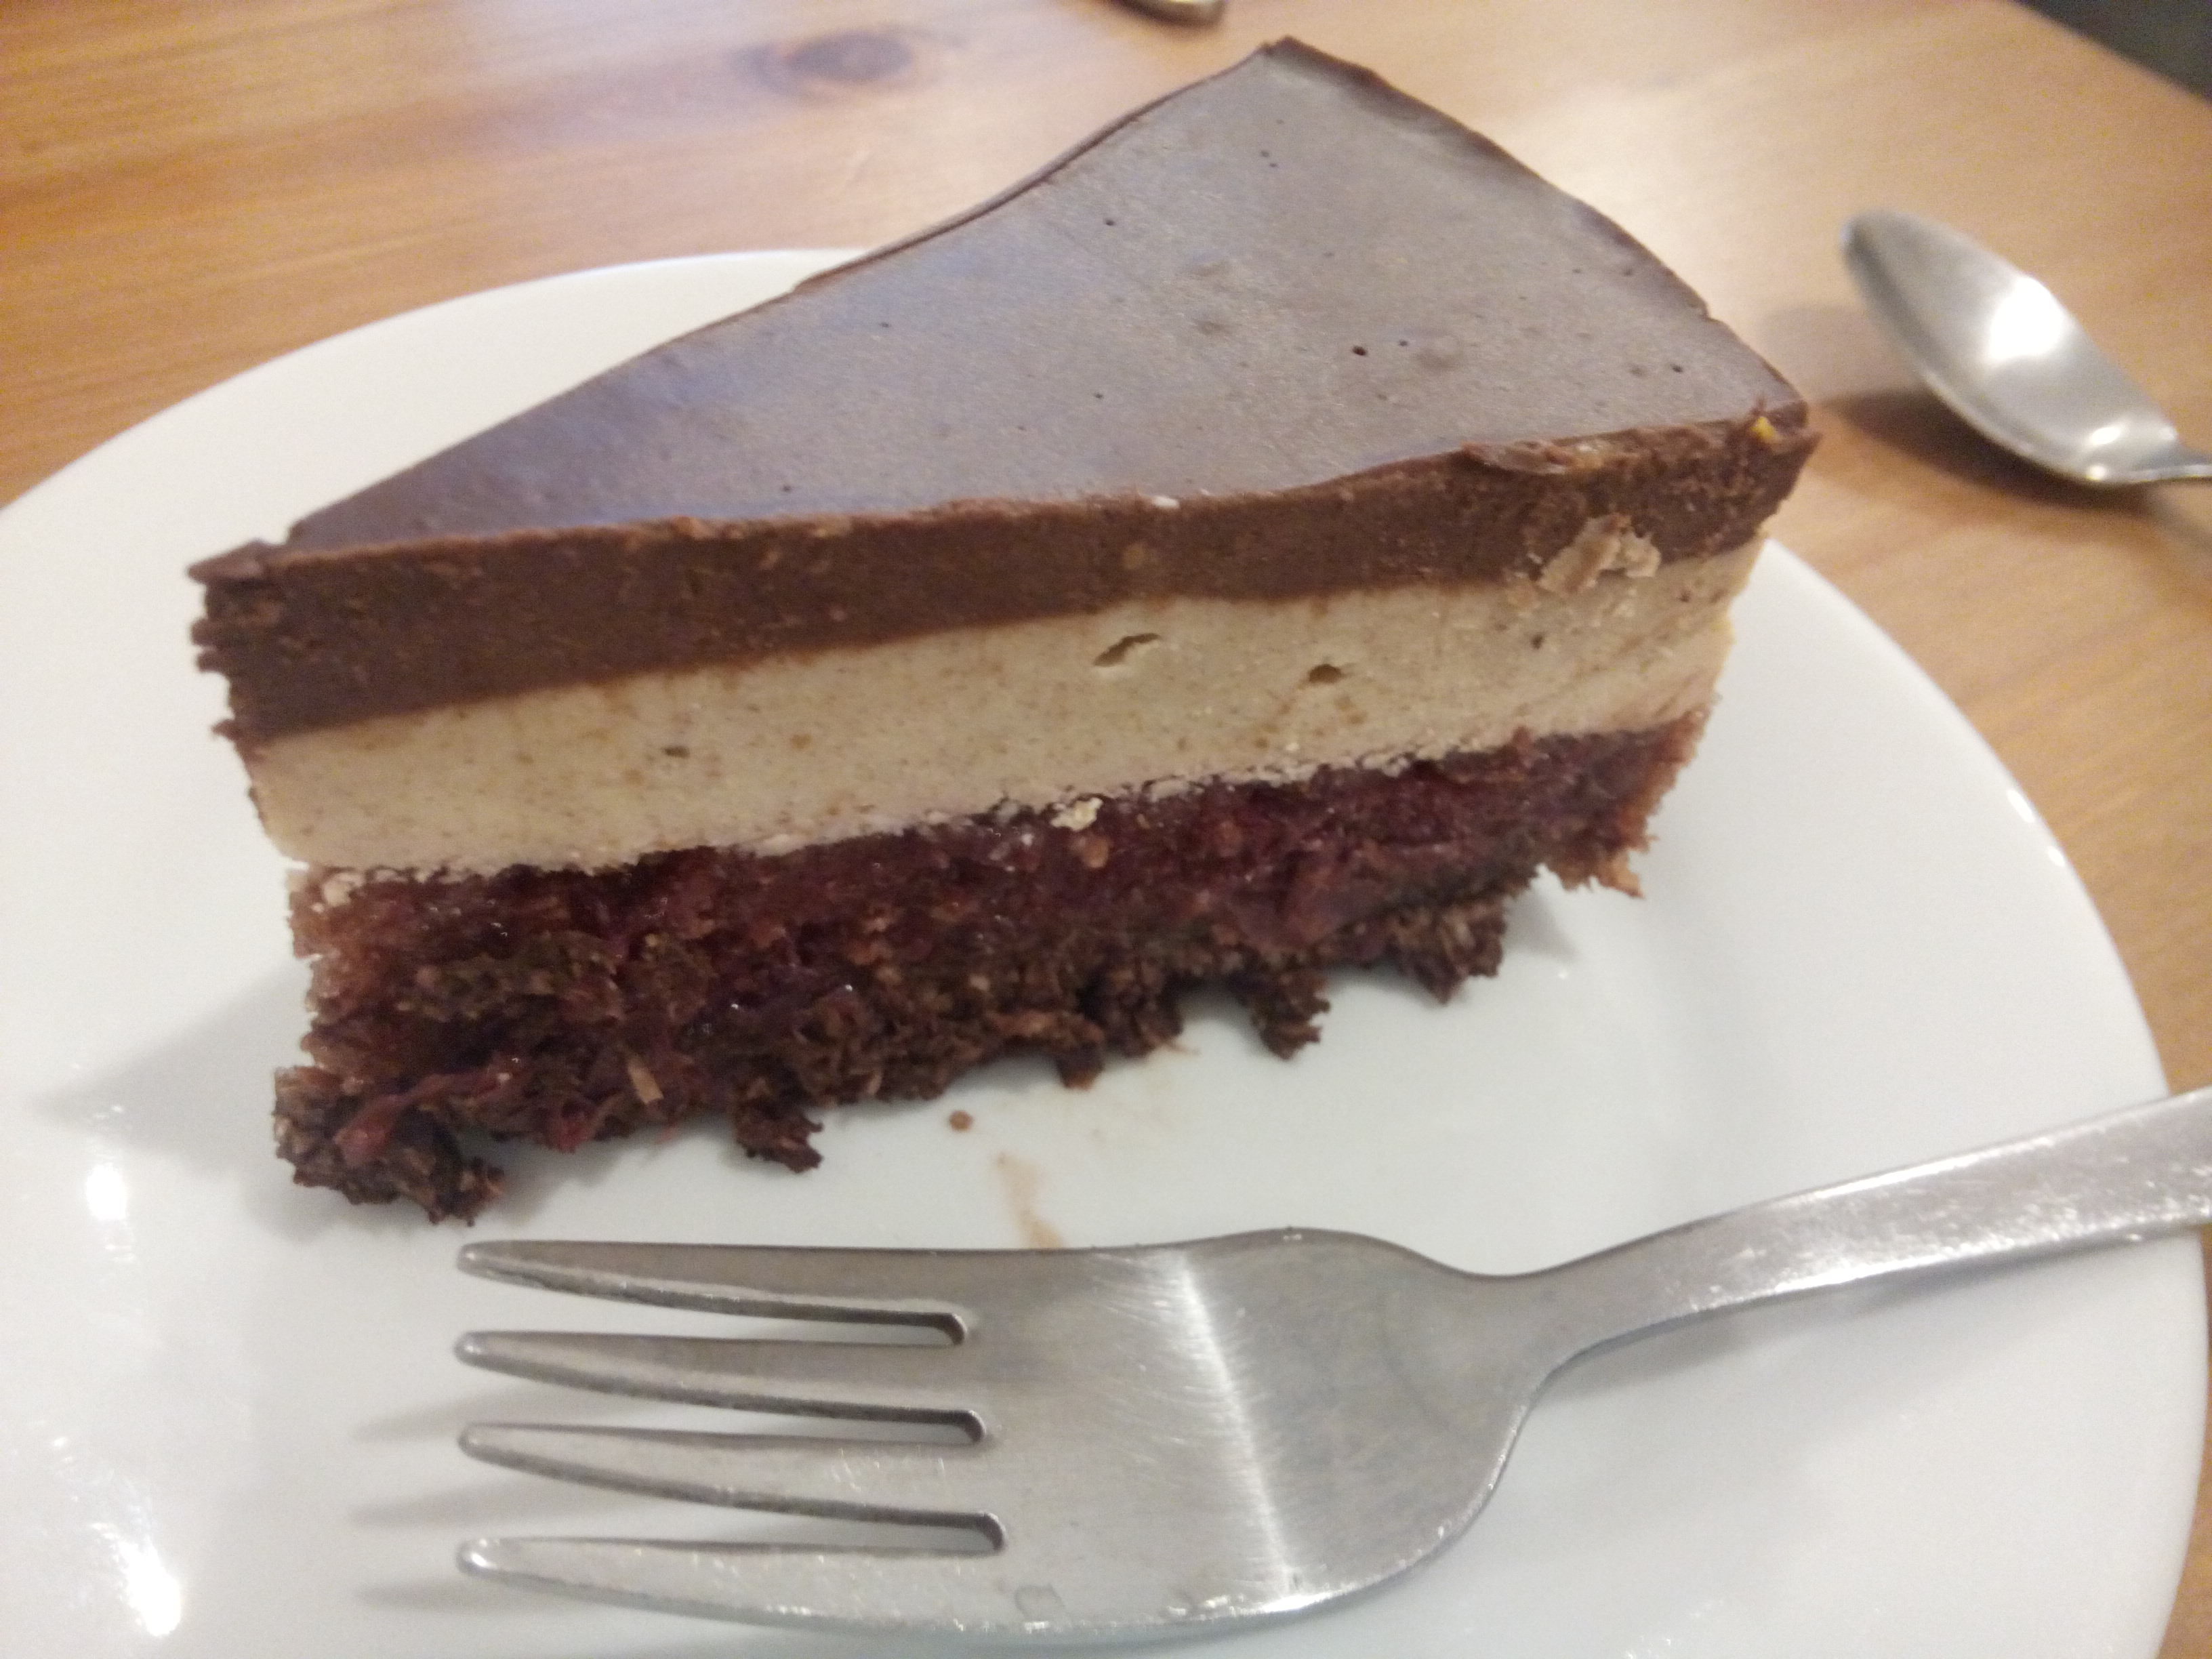 Cake with a chocolate layer, a cream layer and a purple cherry layer